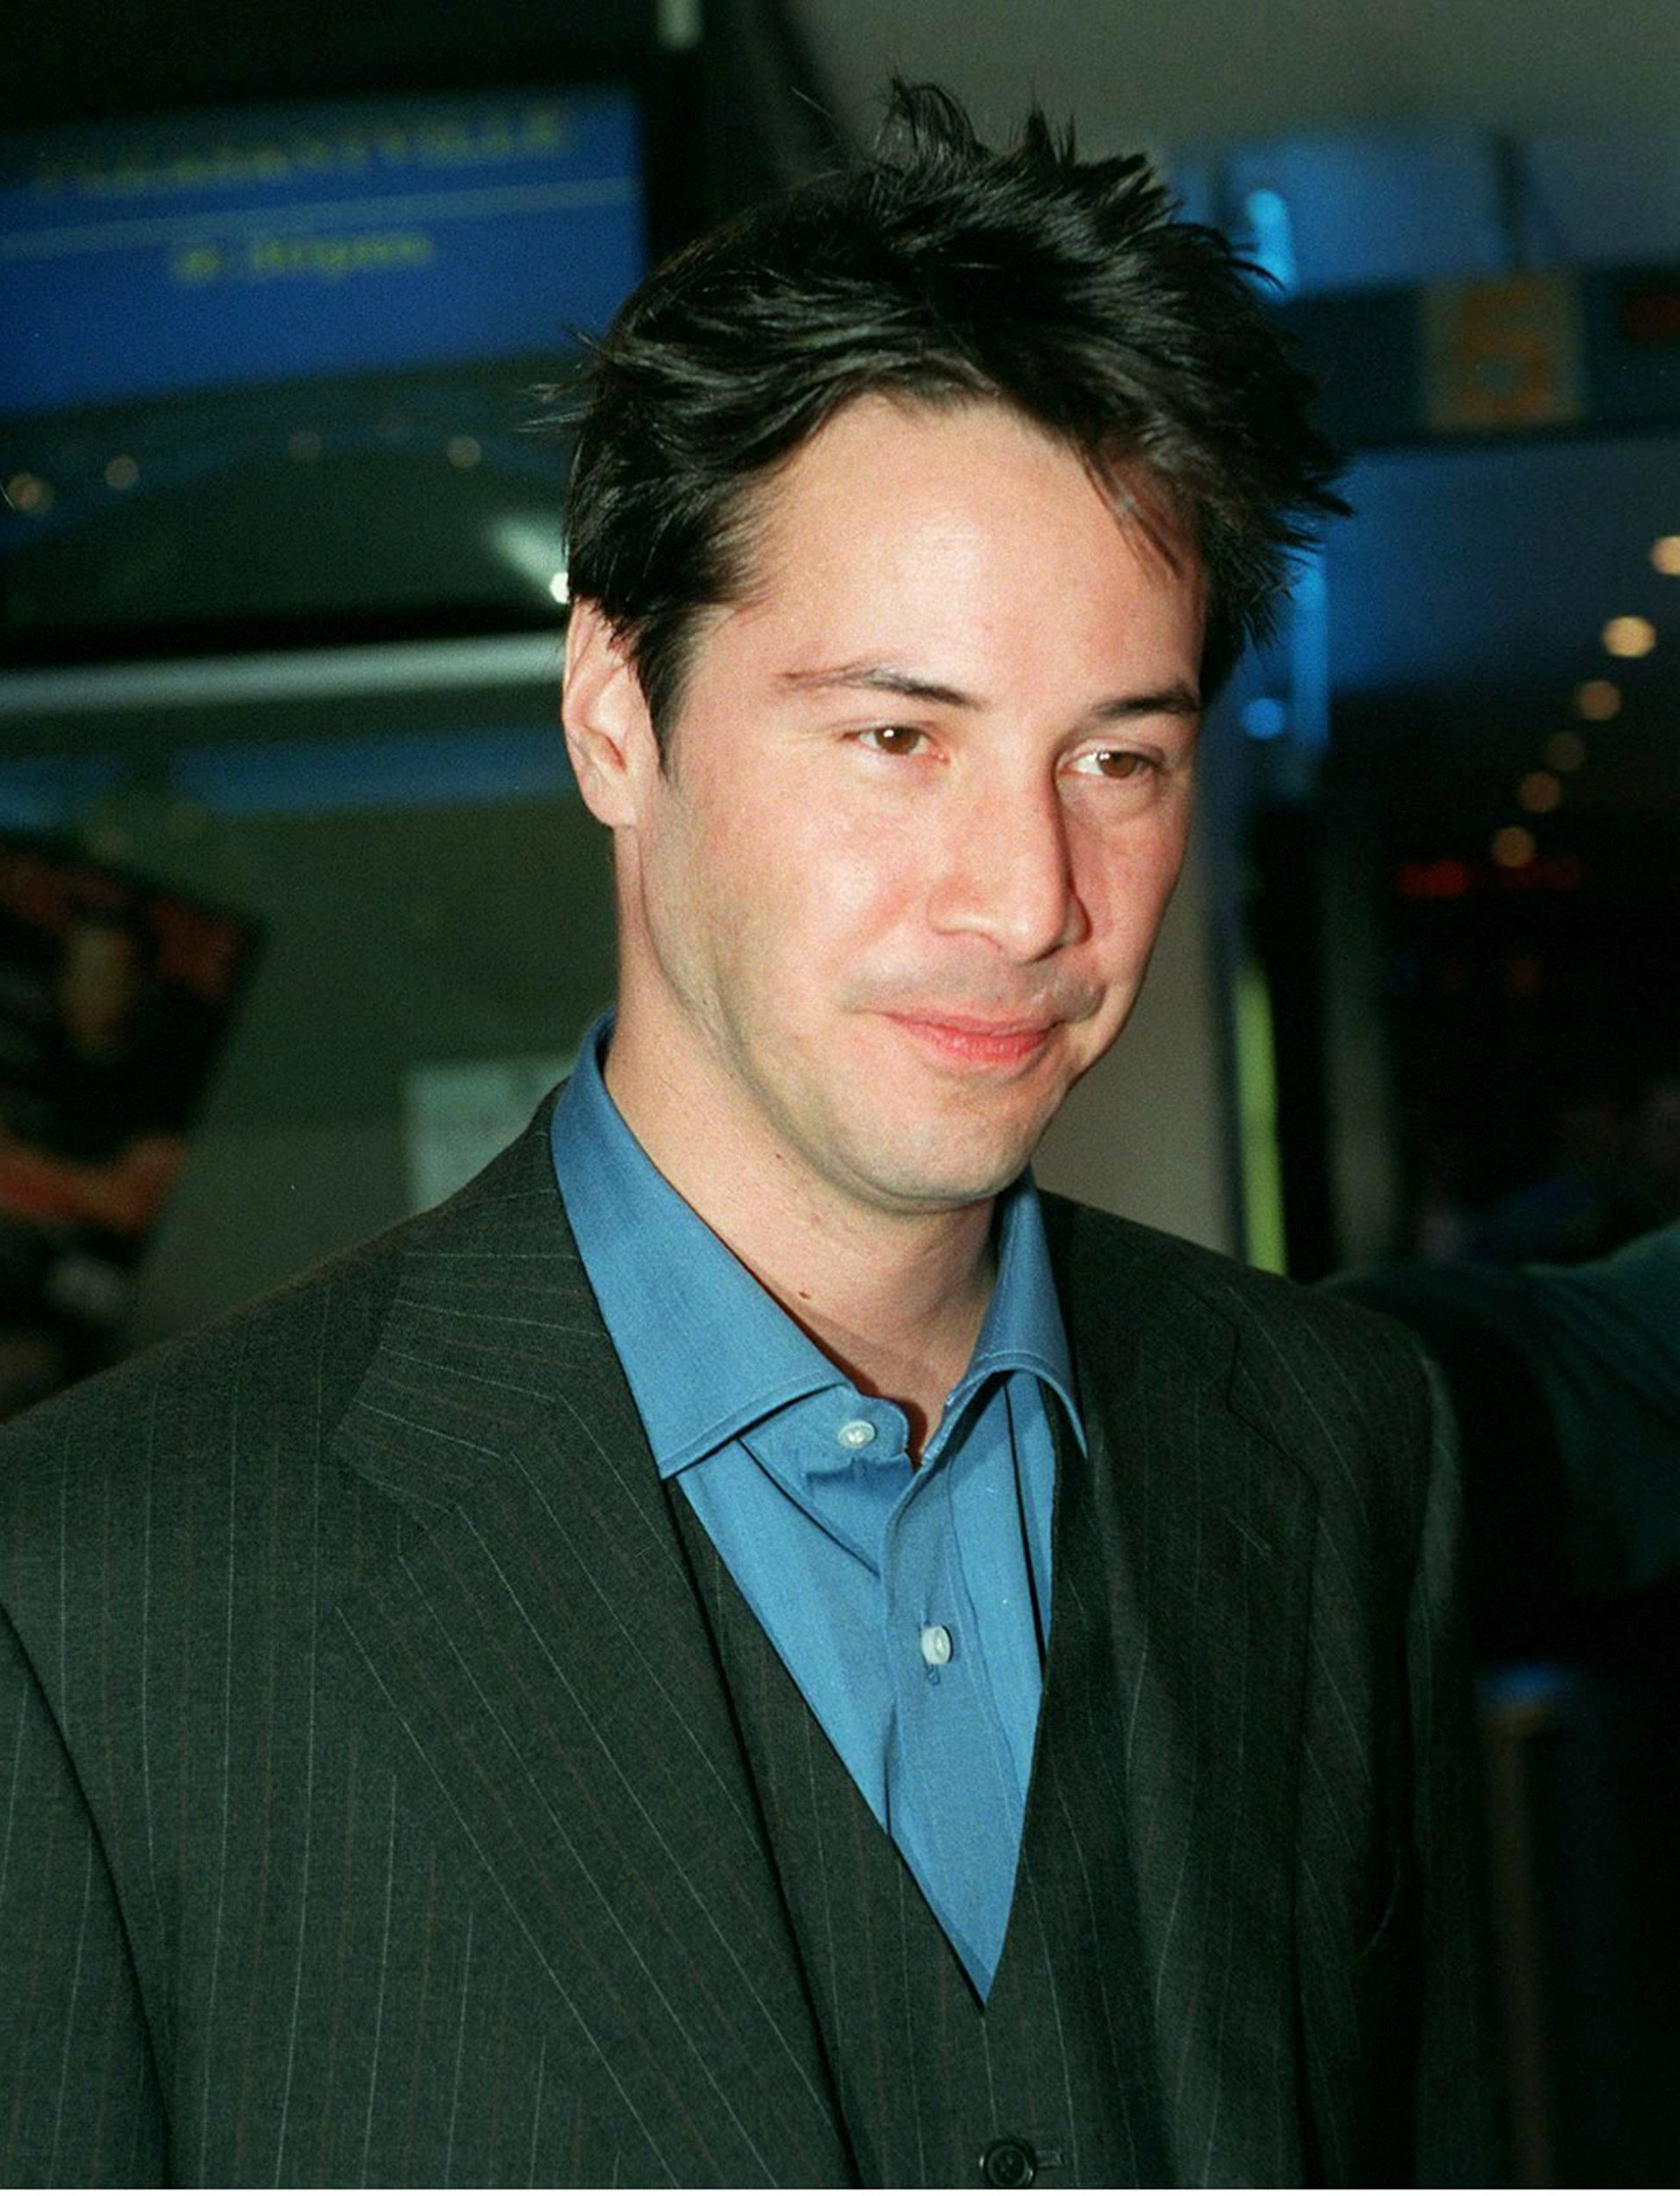 Keanu Reeves attends the Australian Premiere of The Matrix in Sydney, Australia, in April 1999. | Source: Getty Images.